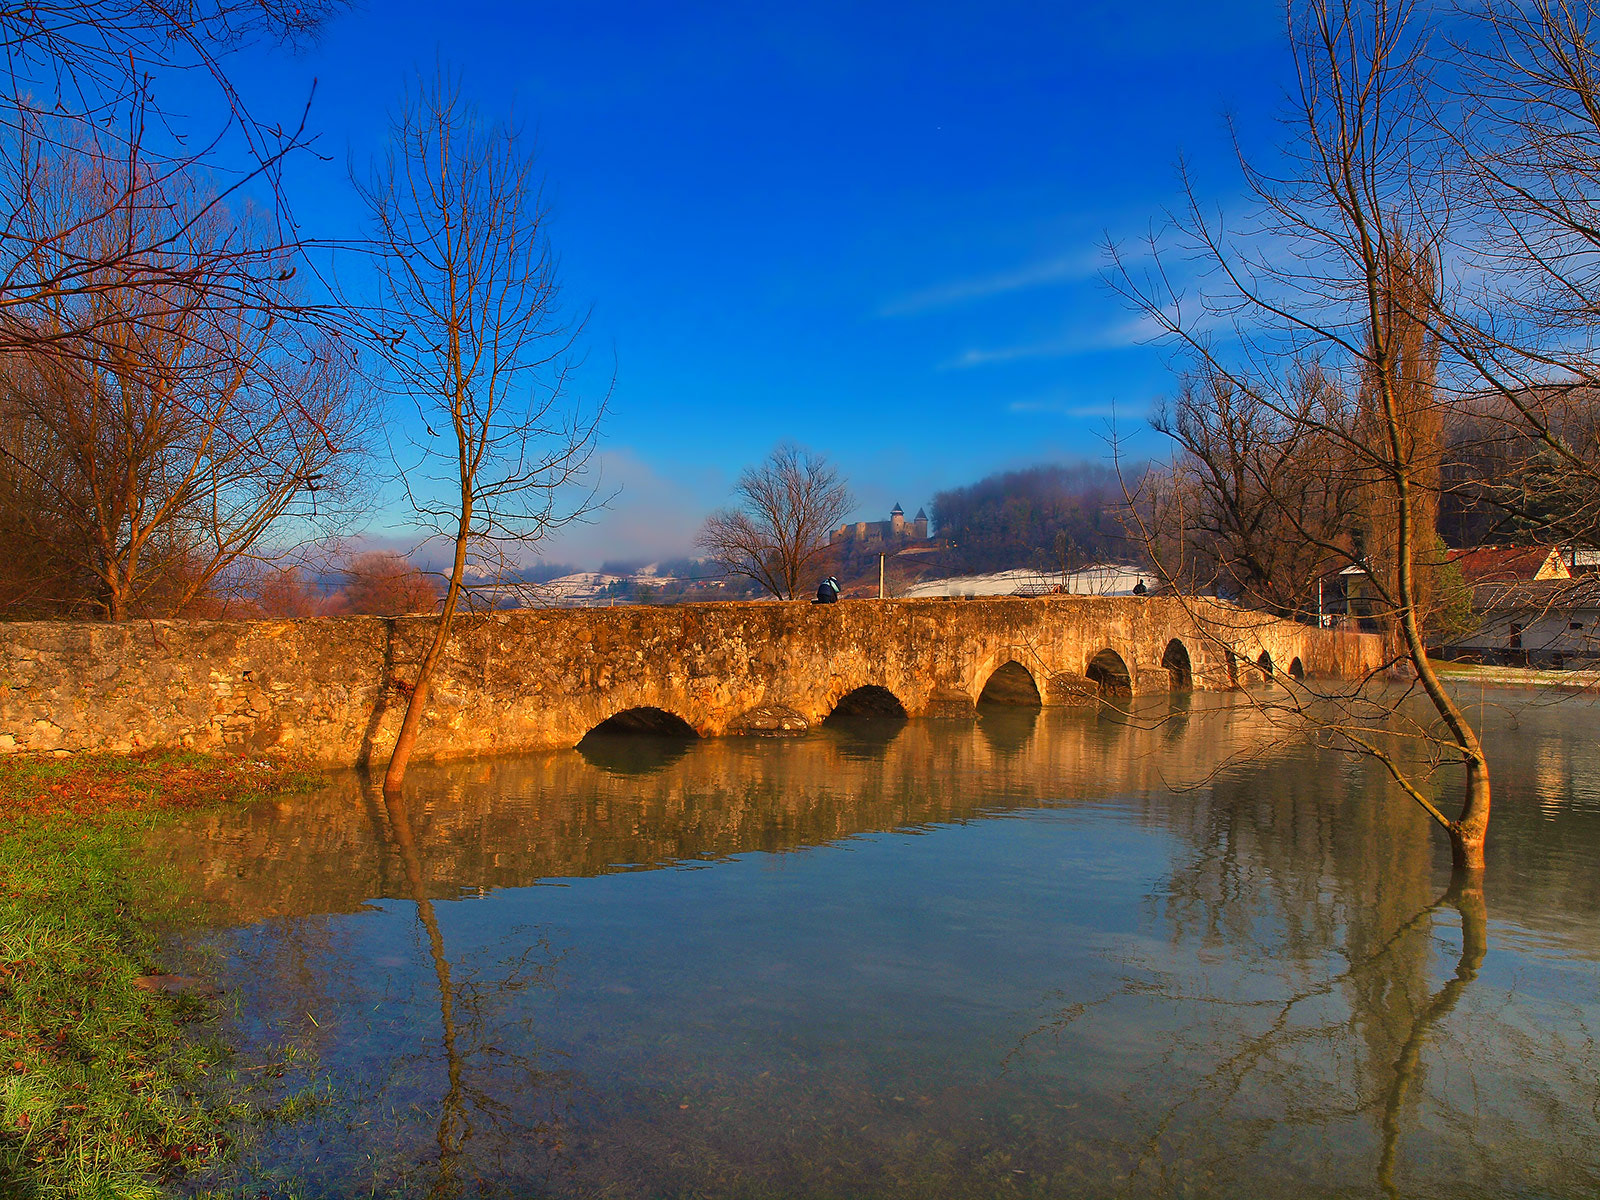 Photograph BRIDGE by Mirna Vidić on 500px